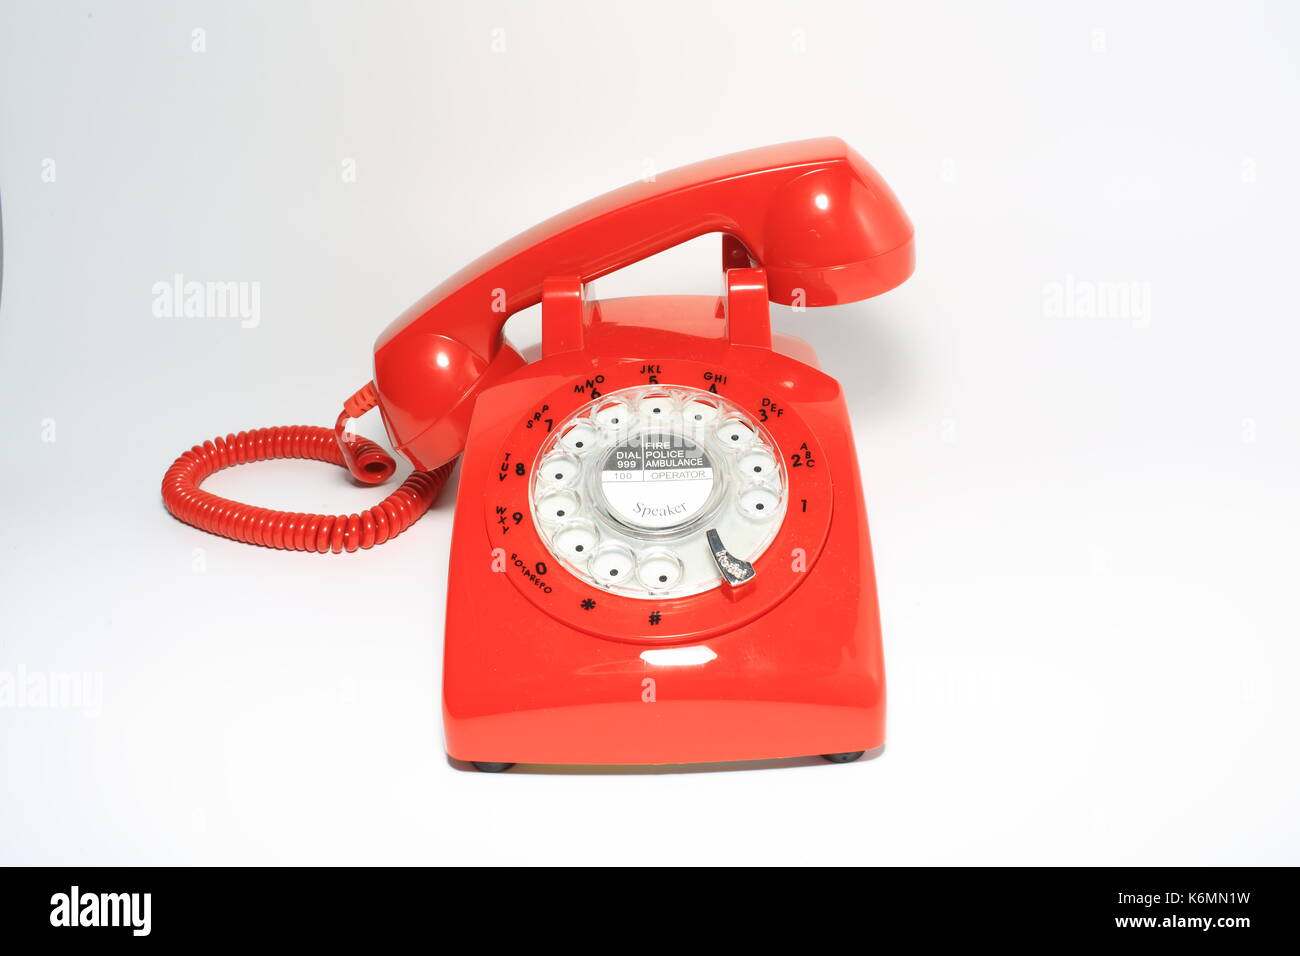 Retro rotary dial phone on call with no body, hang up by hollow man - Stock Image